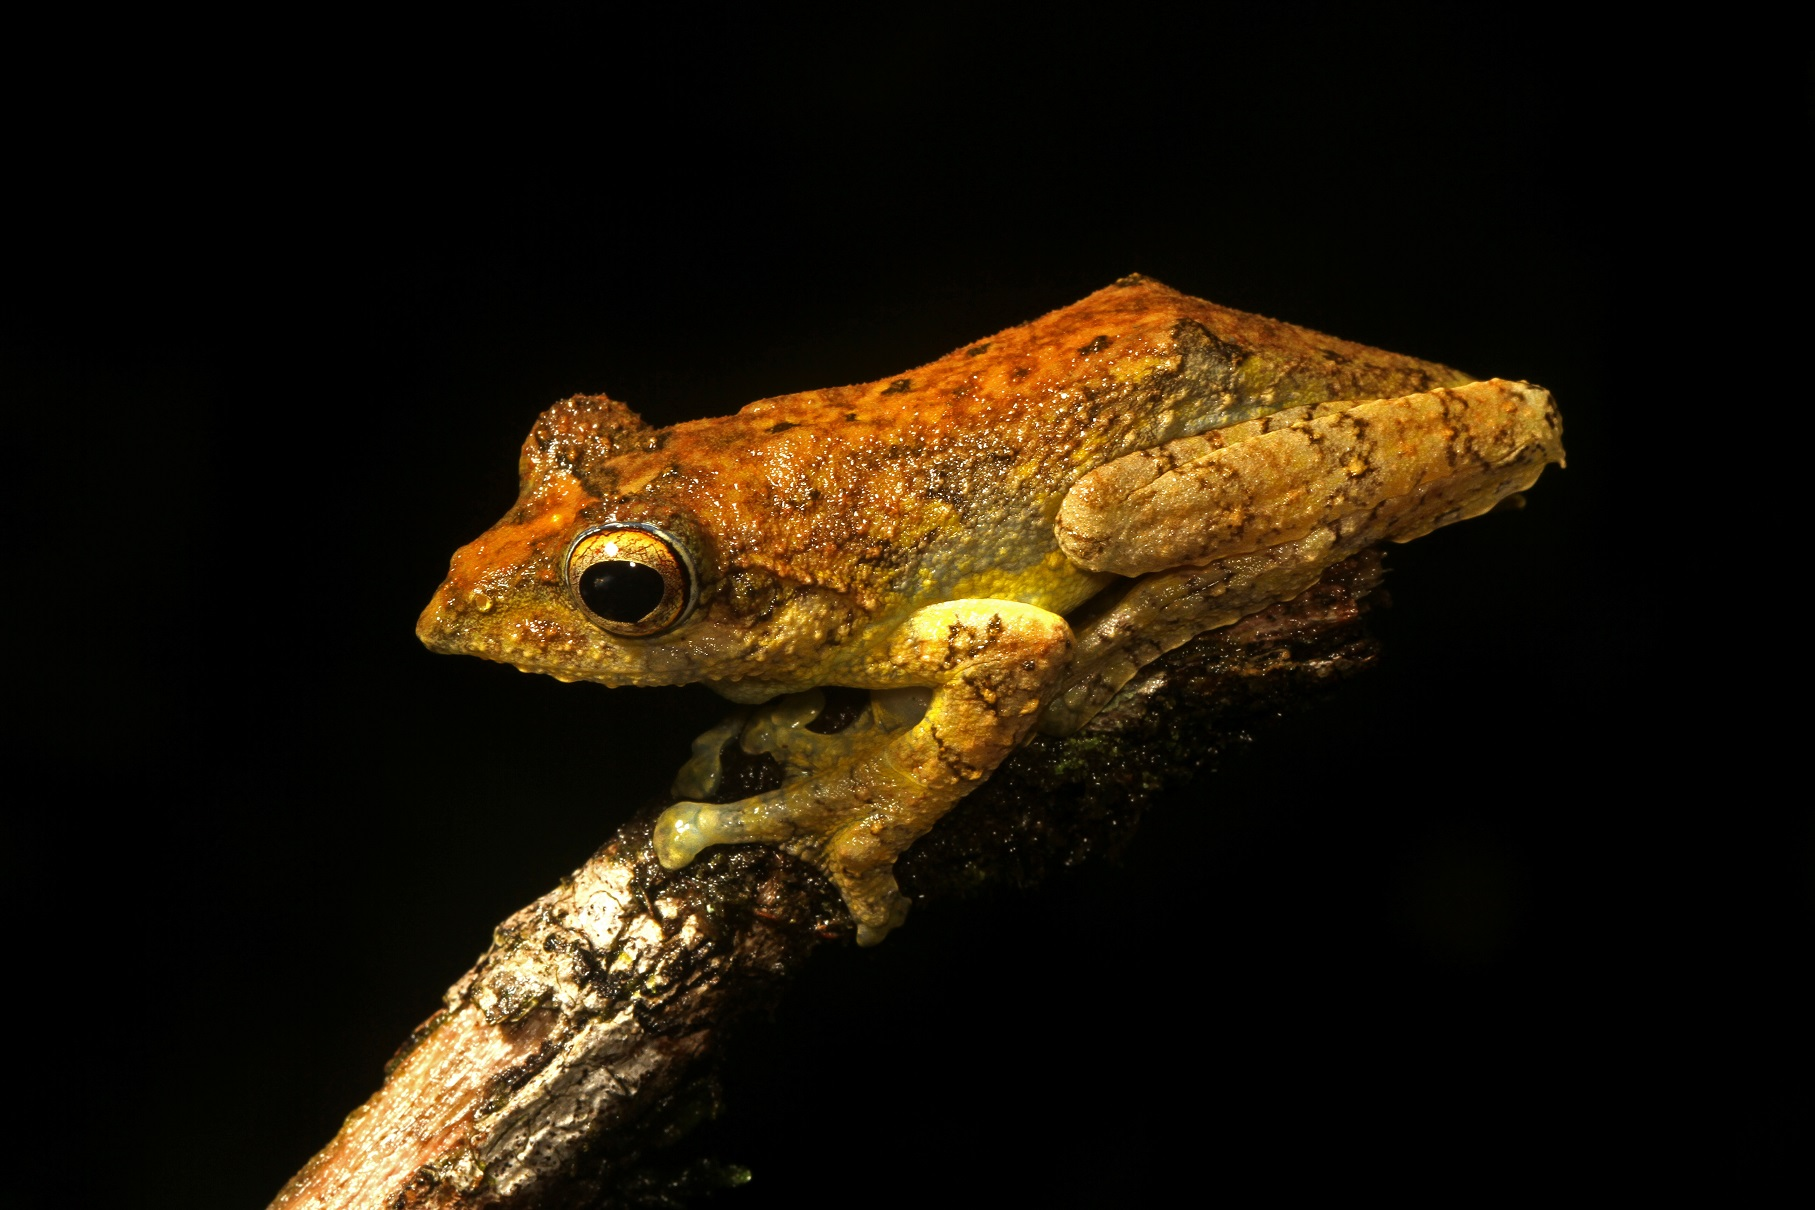 The Kalakad gliding frog is named after a forest in Tamil Nadu where it was first found.  Measuring about 6 cm from snout to vent, the frog's cryptic colouration allows it to camouflage itself in its wet evergreen forest habitat. Photo: David Raju  Cover photo: Dhritiman Mukherjee